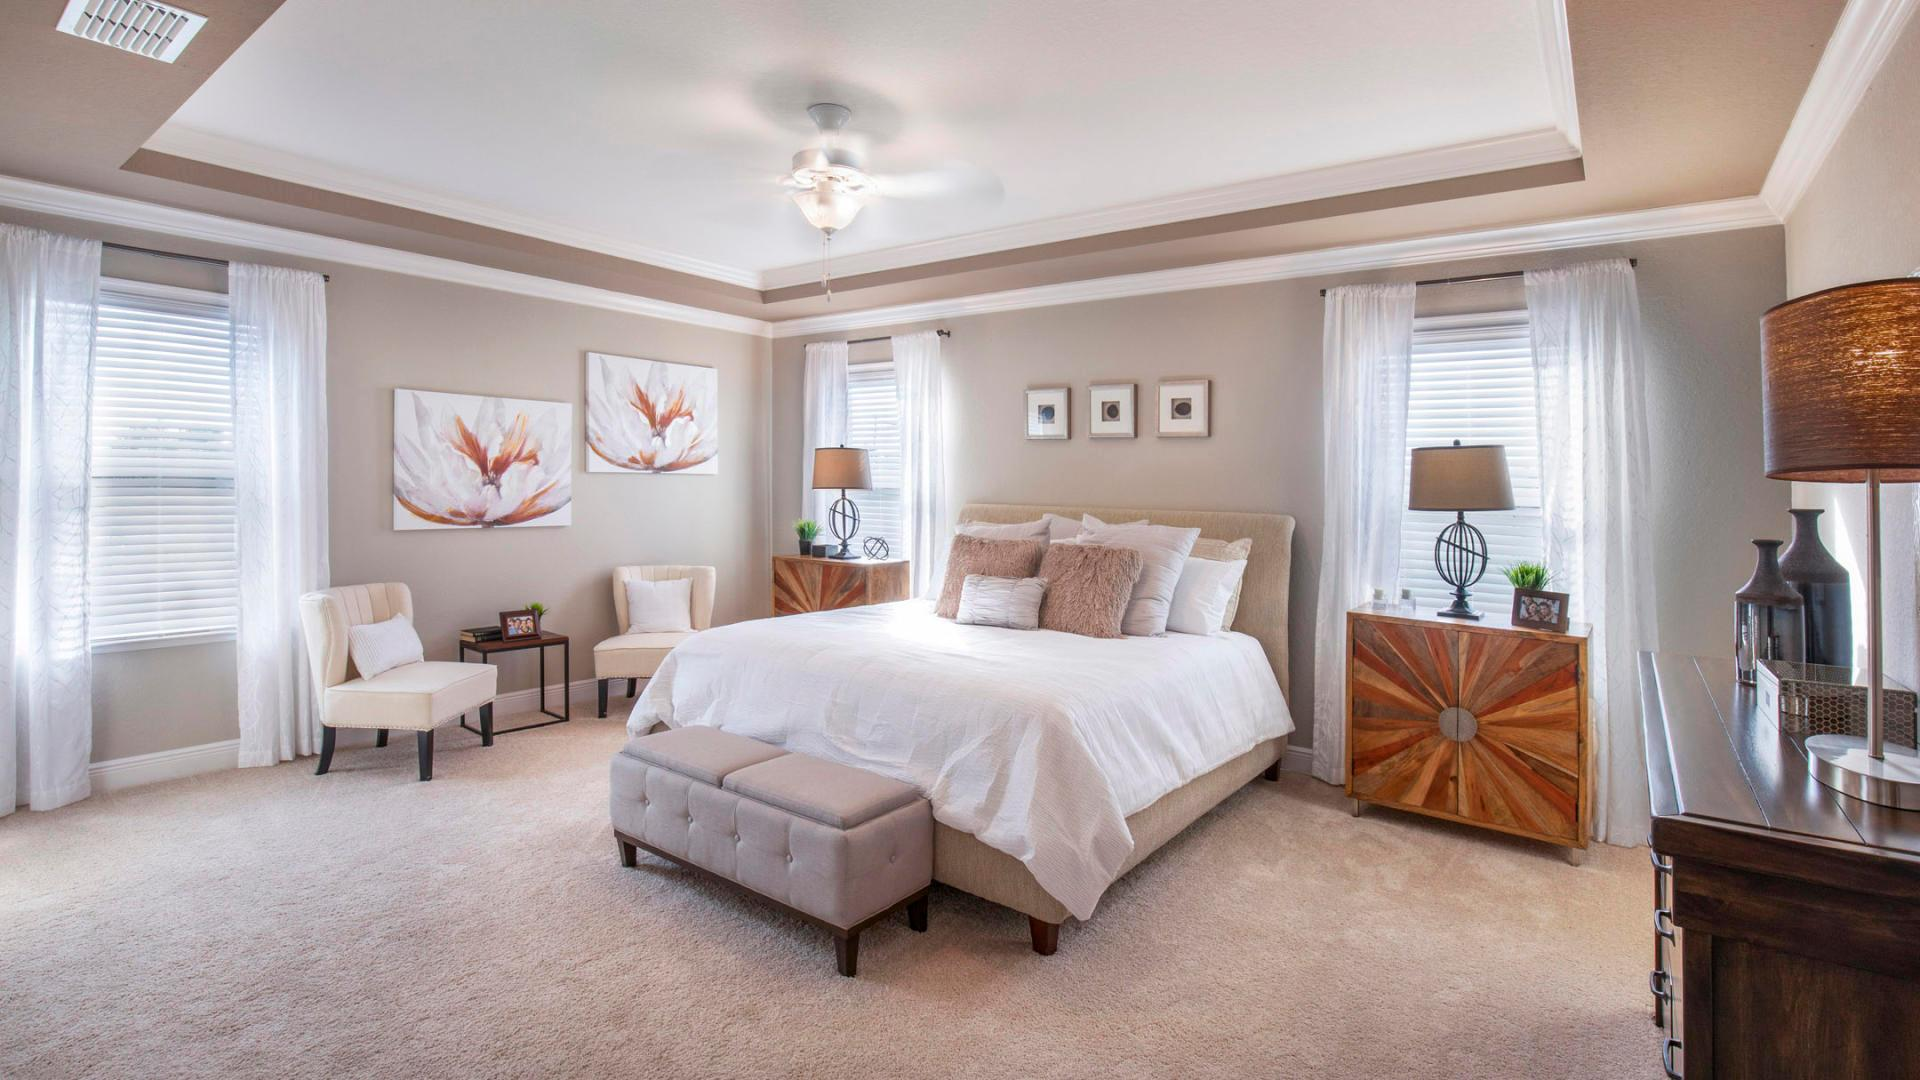 Bedroom featured in the Venice By Maronda Homes in Ocala, FL